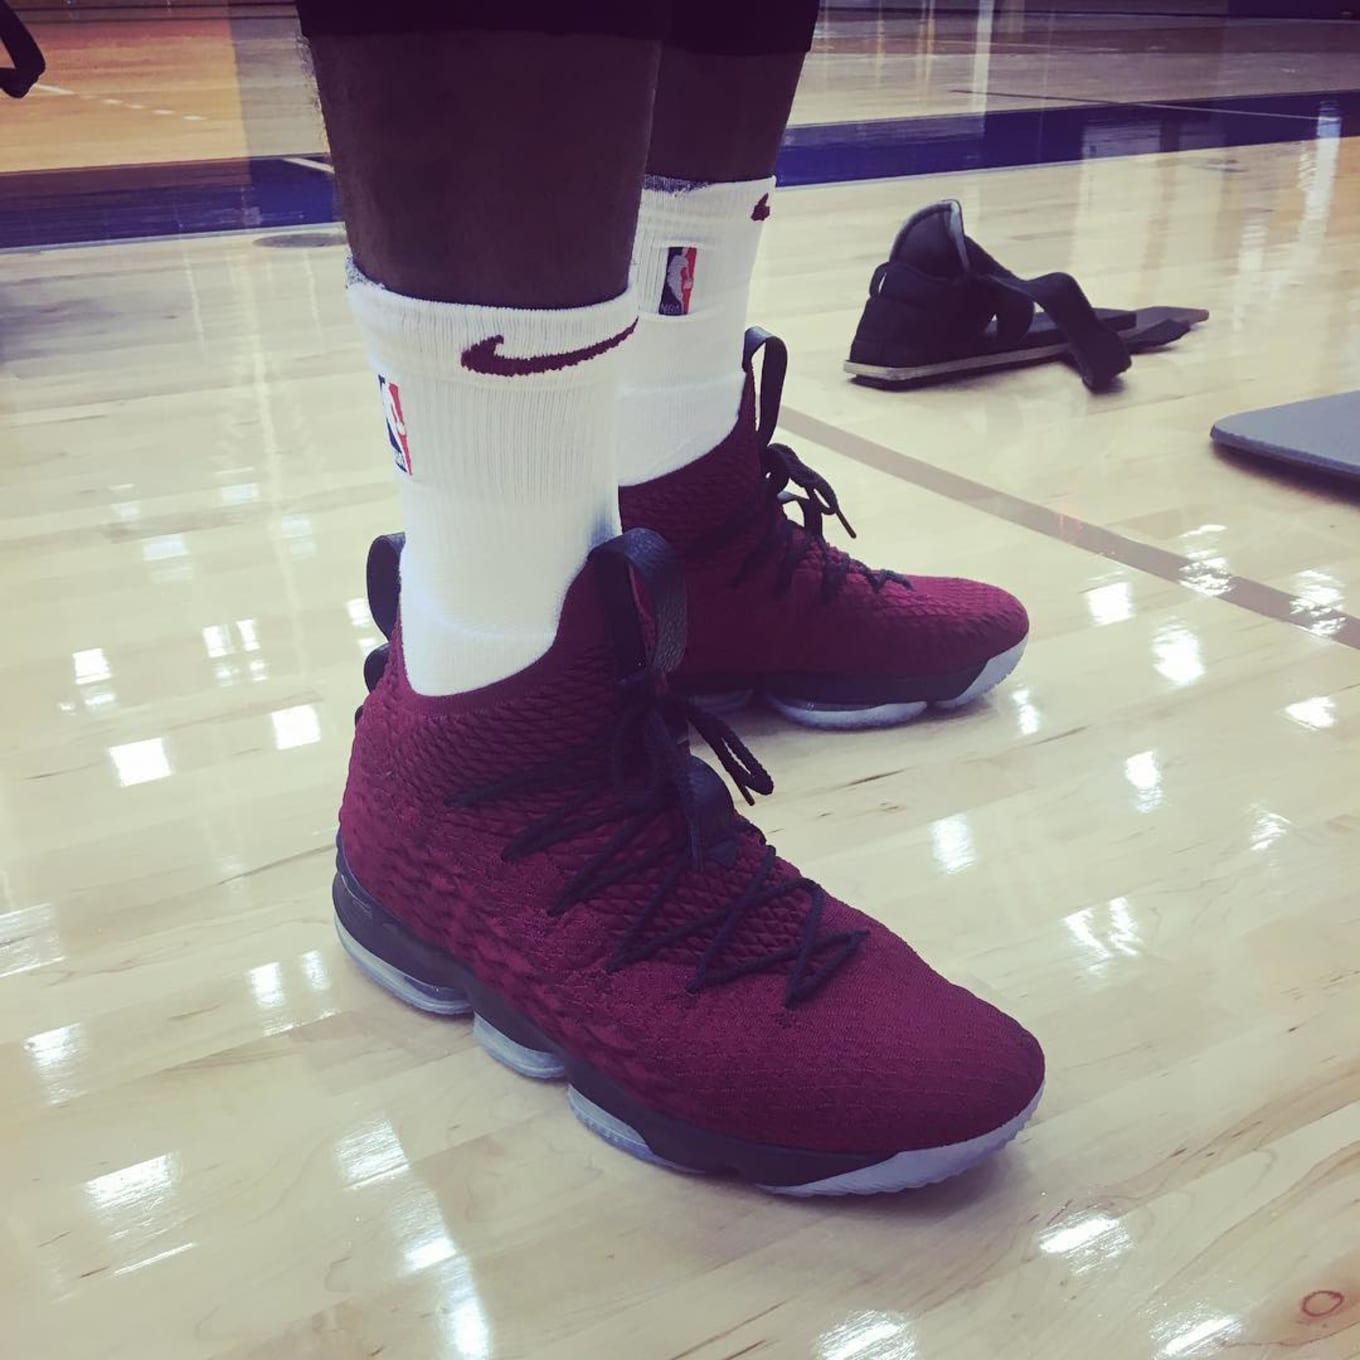 ffabea9f9cca Isaiah Thomas Thought About Stealing LeBron James  New Sneakers